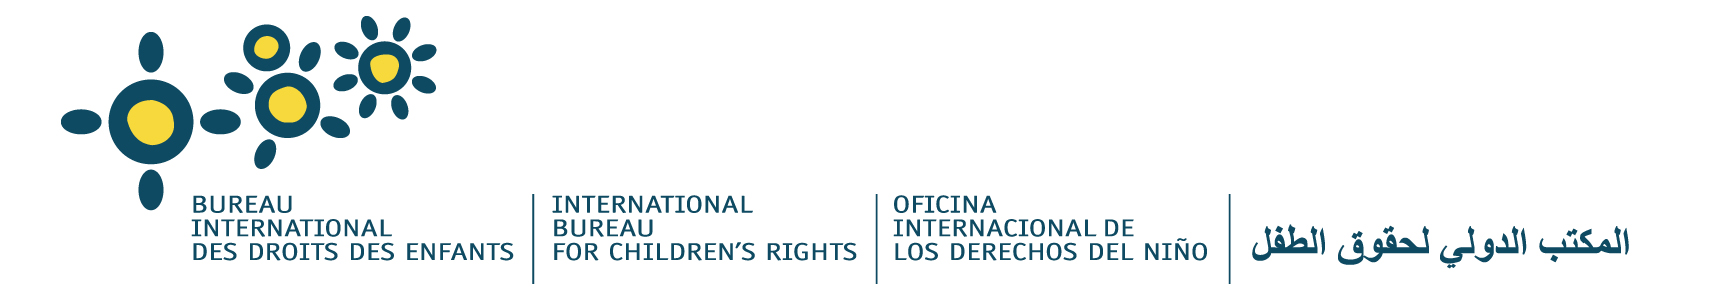 International Bureau for Children's Rights